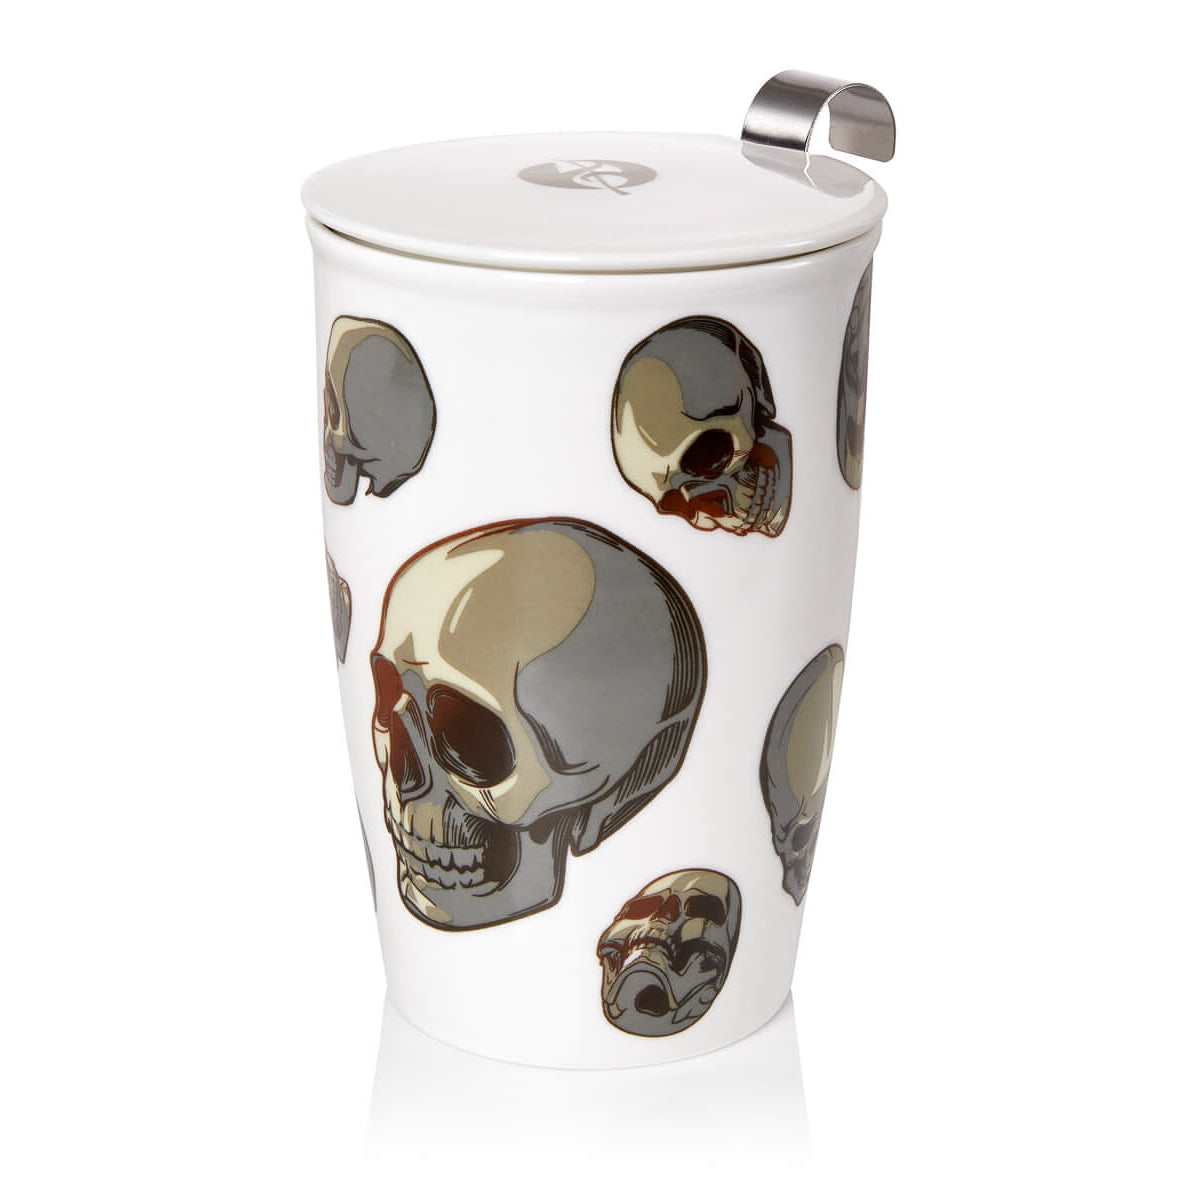 Double-wall Porcelain Mug with Infuser - Skulls